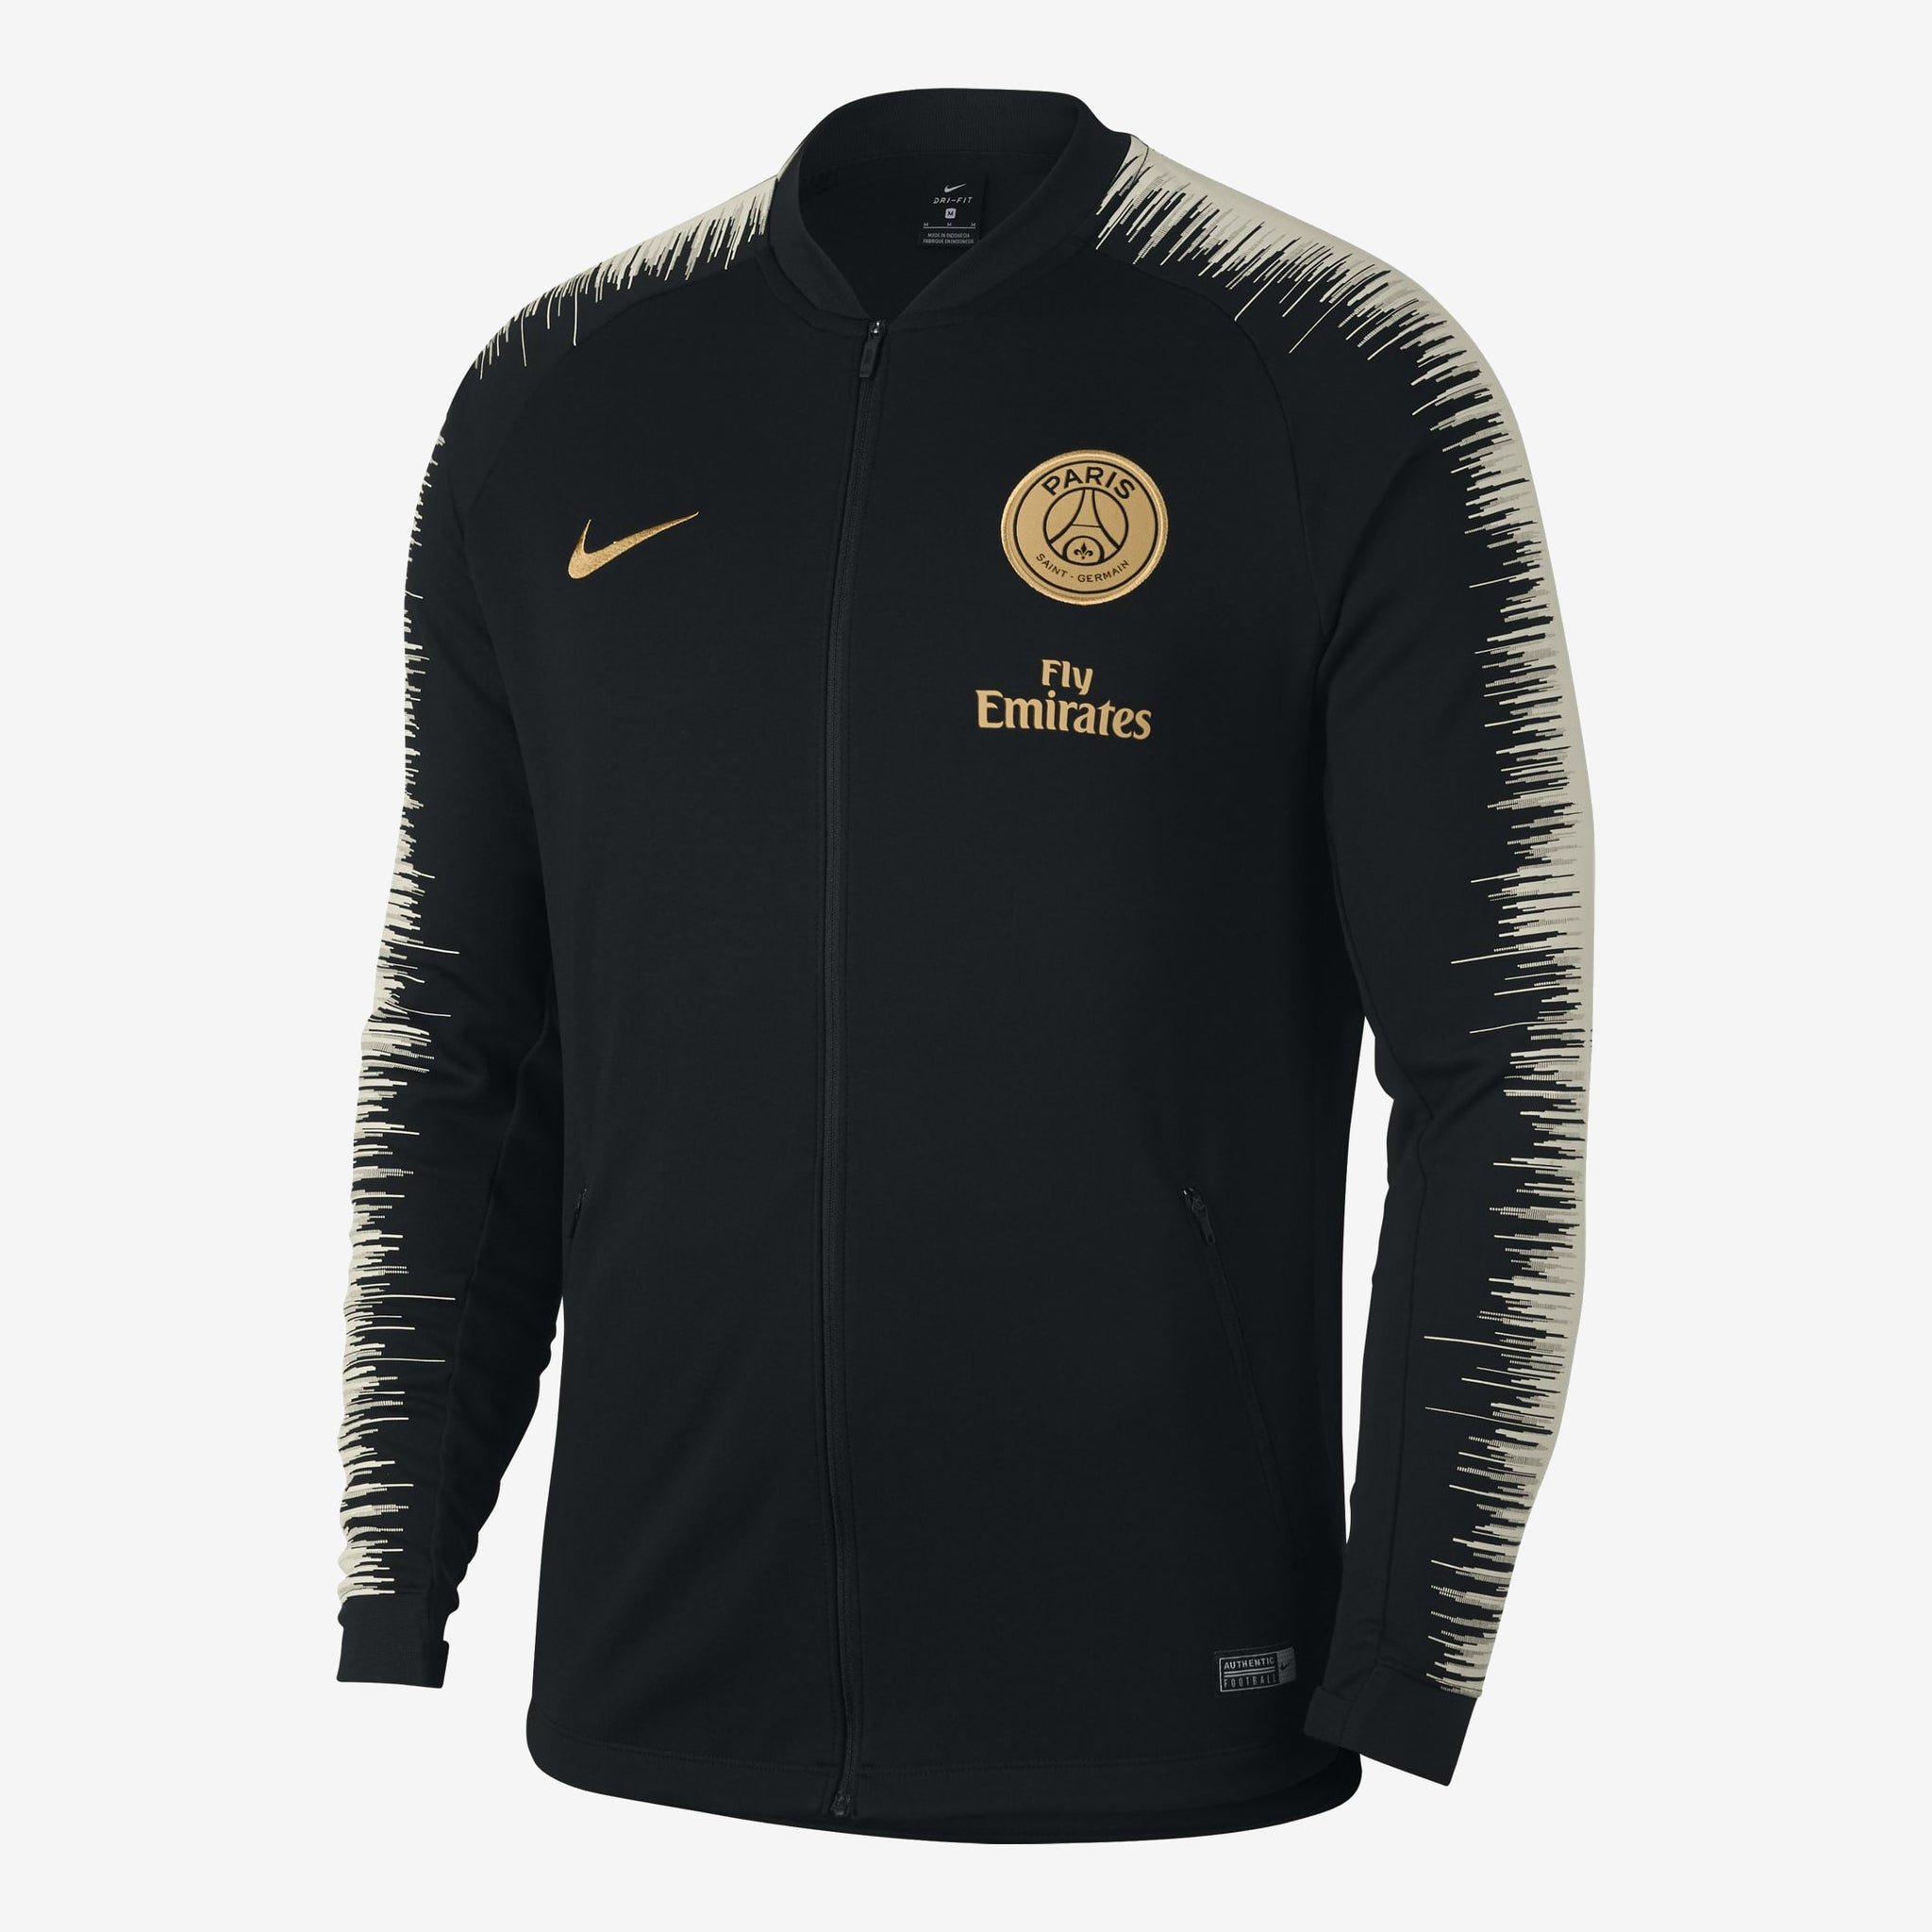 5dfd18203ae68 Nike - Nike Paris Saint-Germain Anthem Jacket - La Liga Soccer